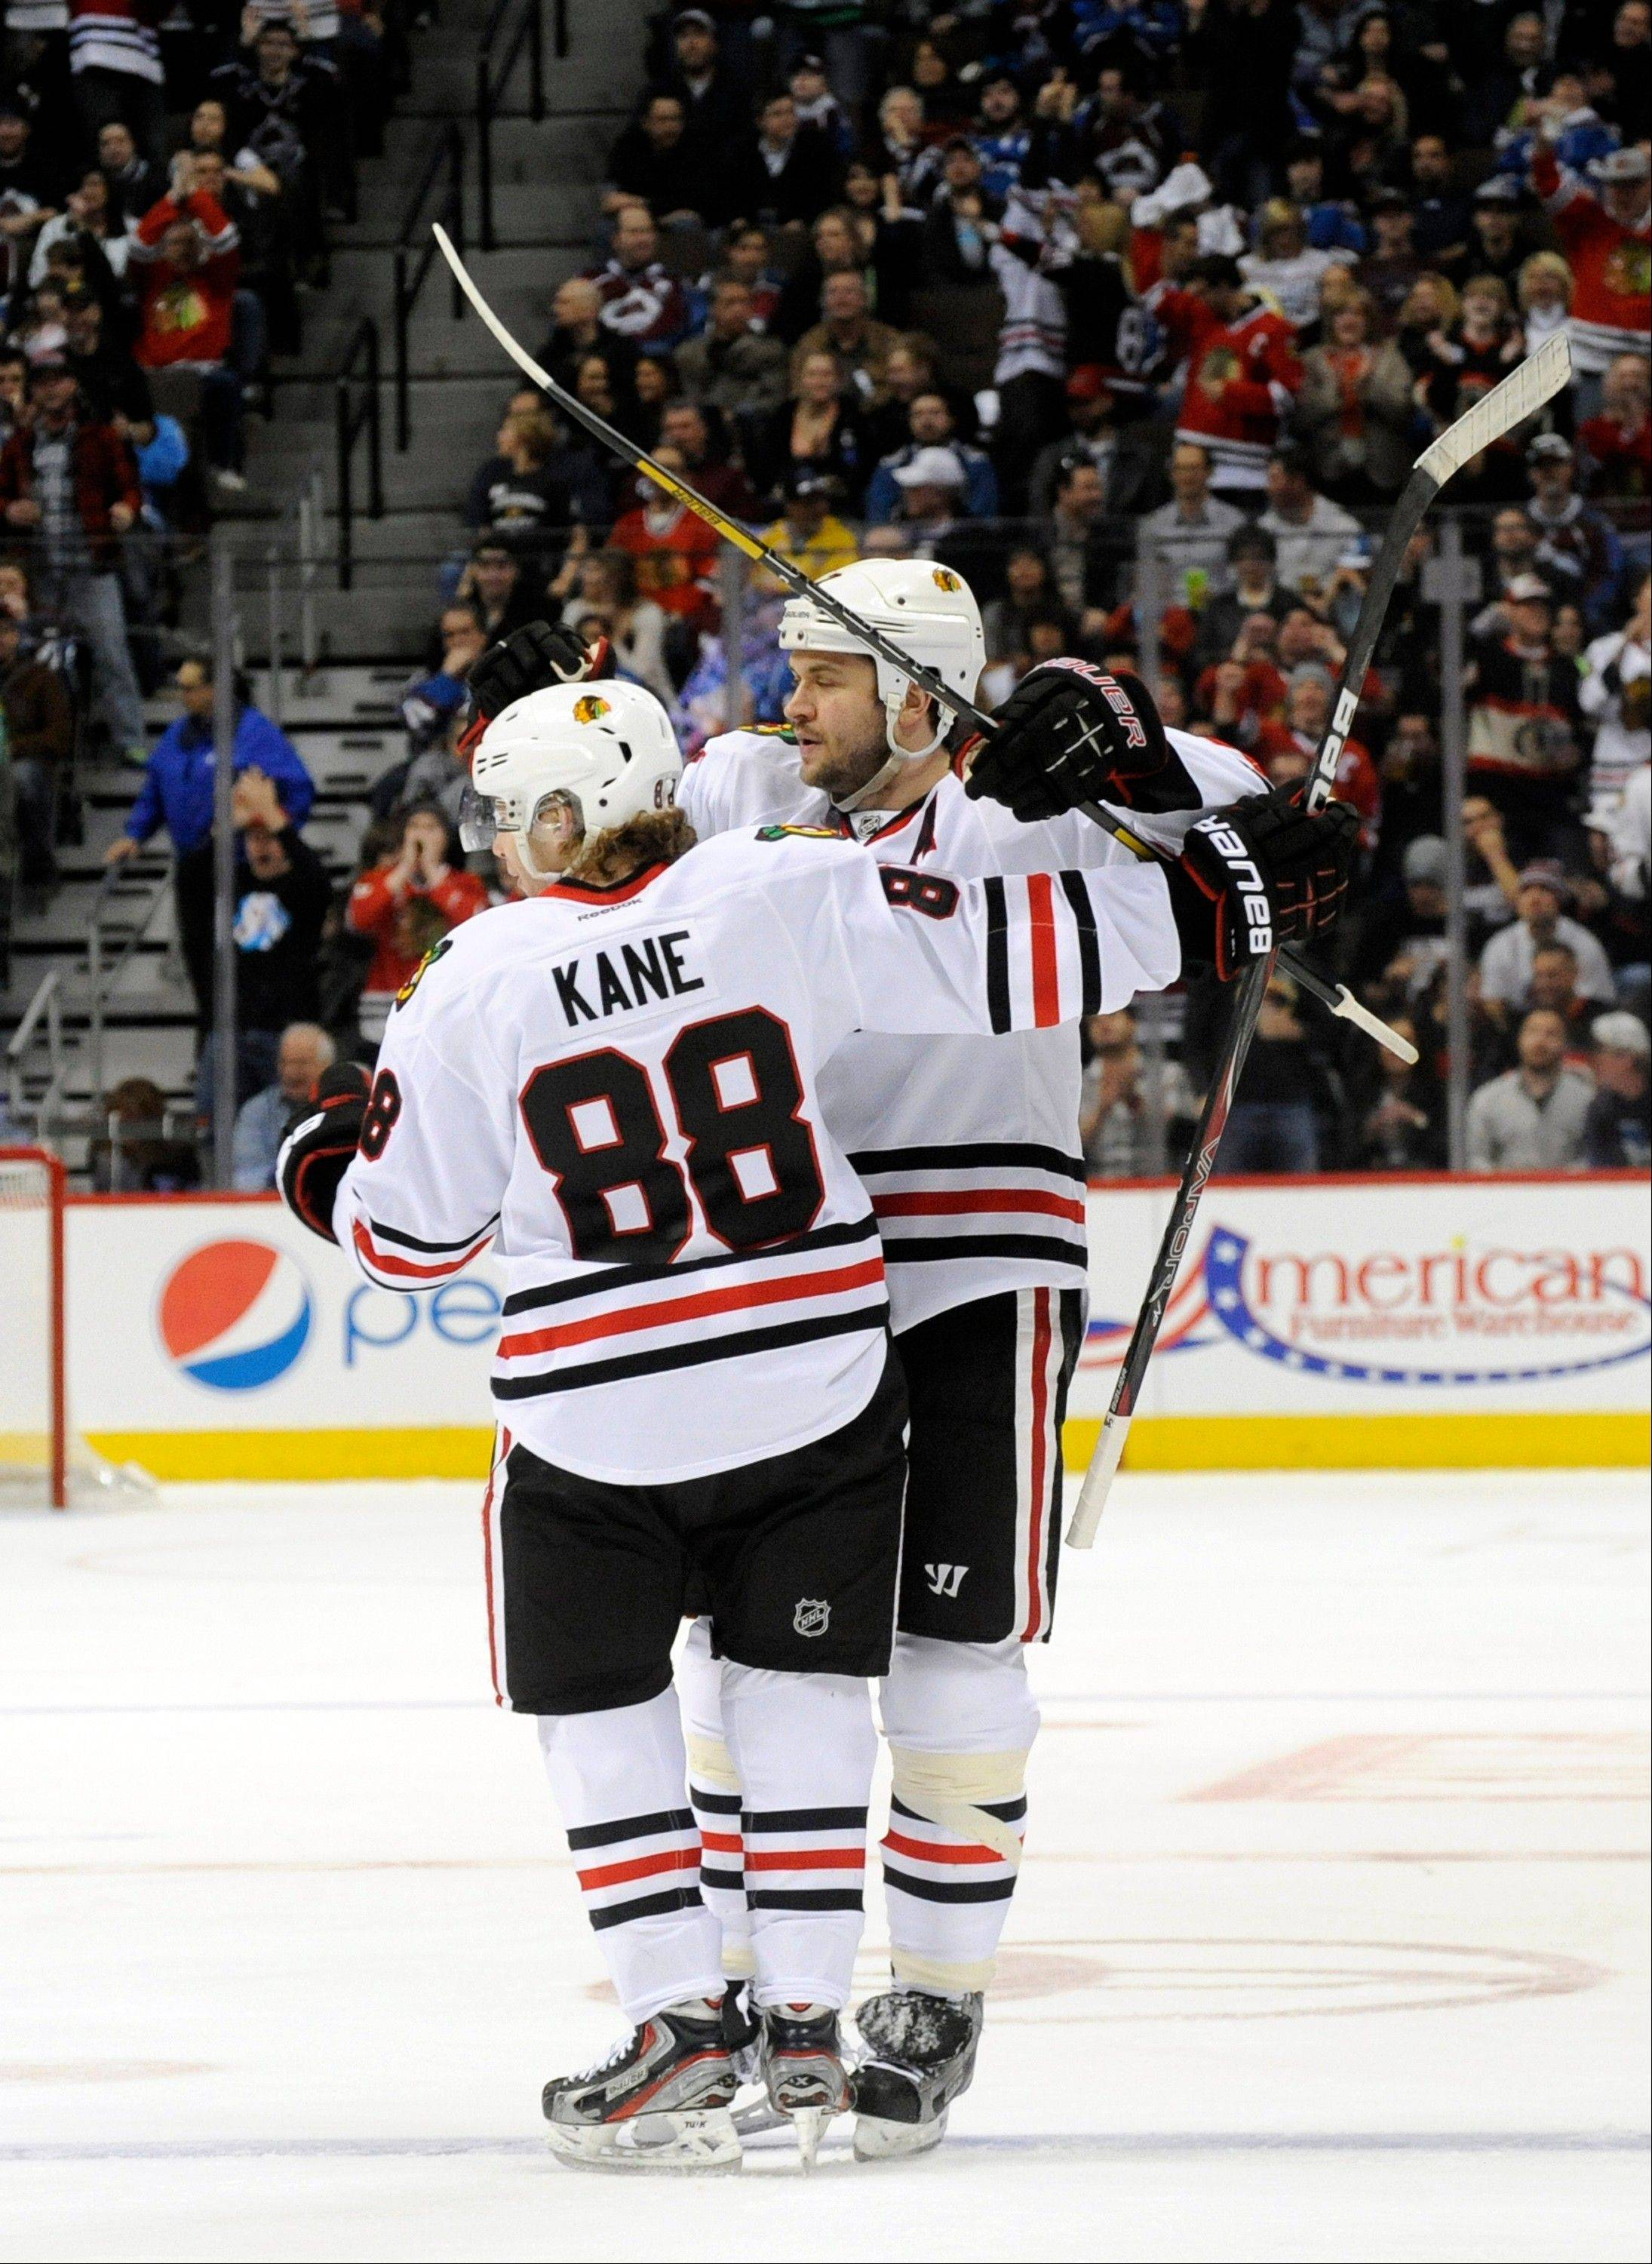 Chicago Blackhawks defenseman Brent Seabrook (7) celebrates his goal against the Colorado Avalanche with Patrick Kane (88) during the second period.